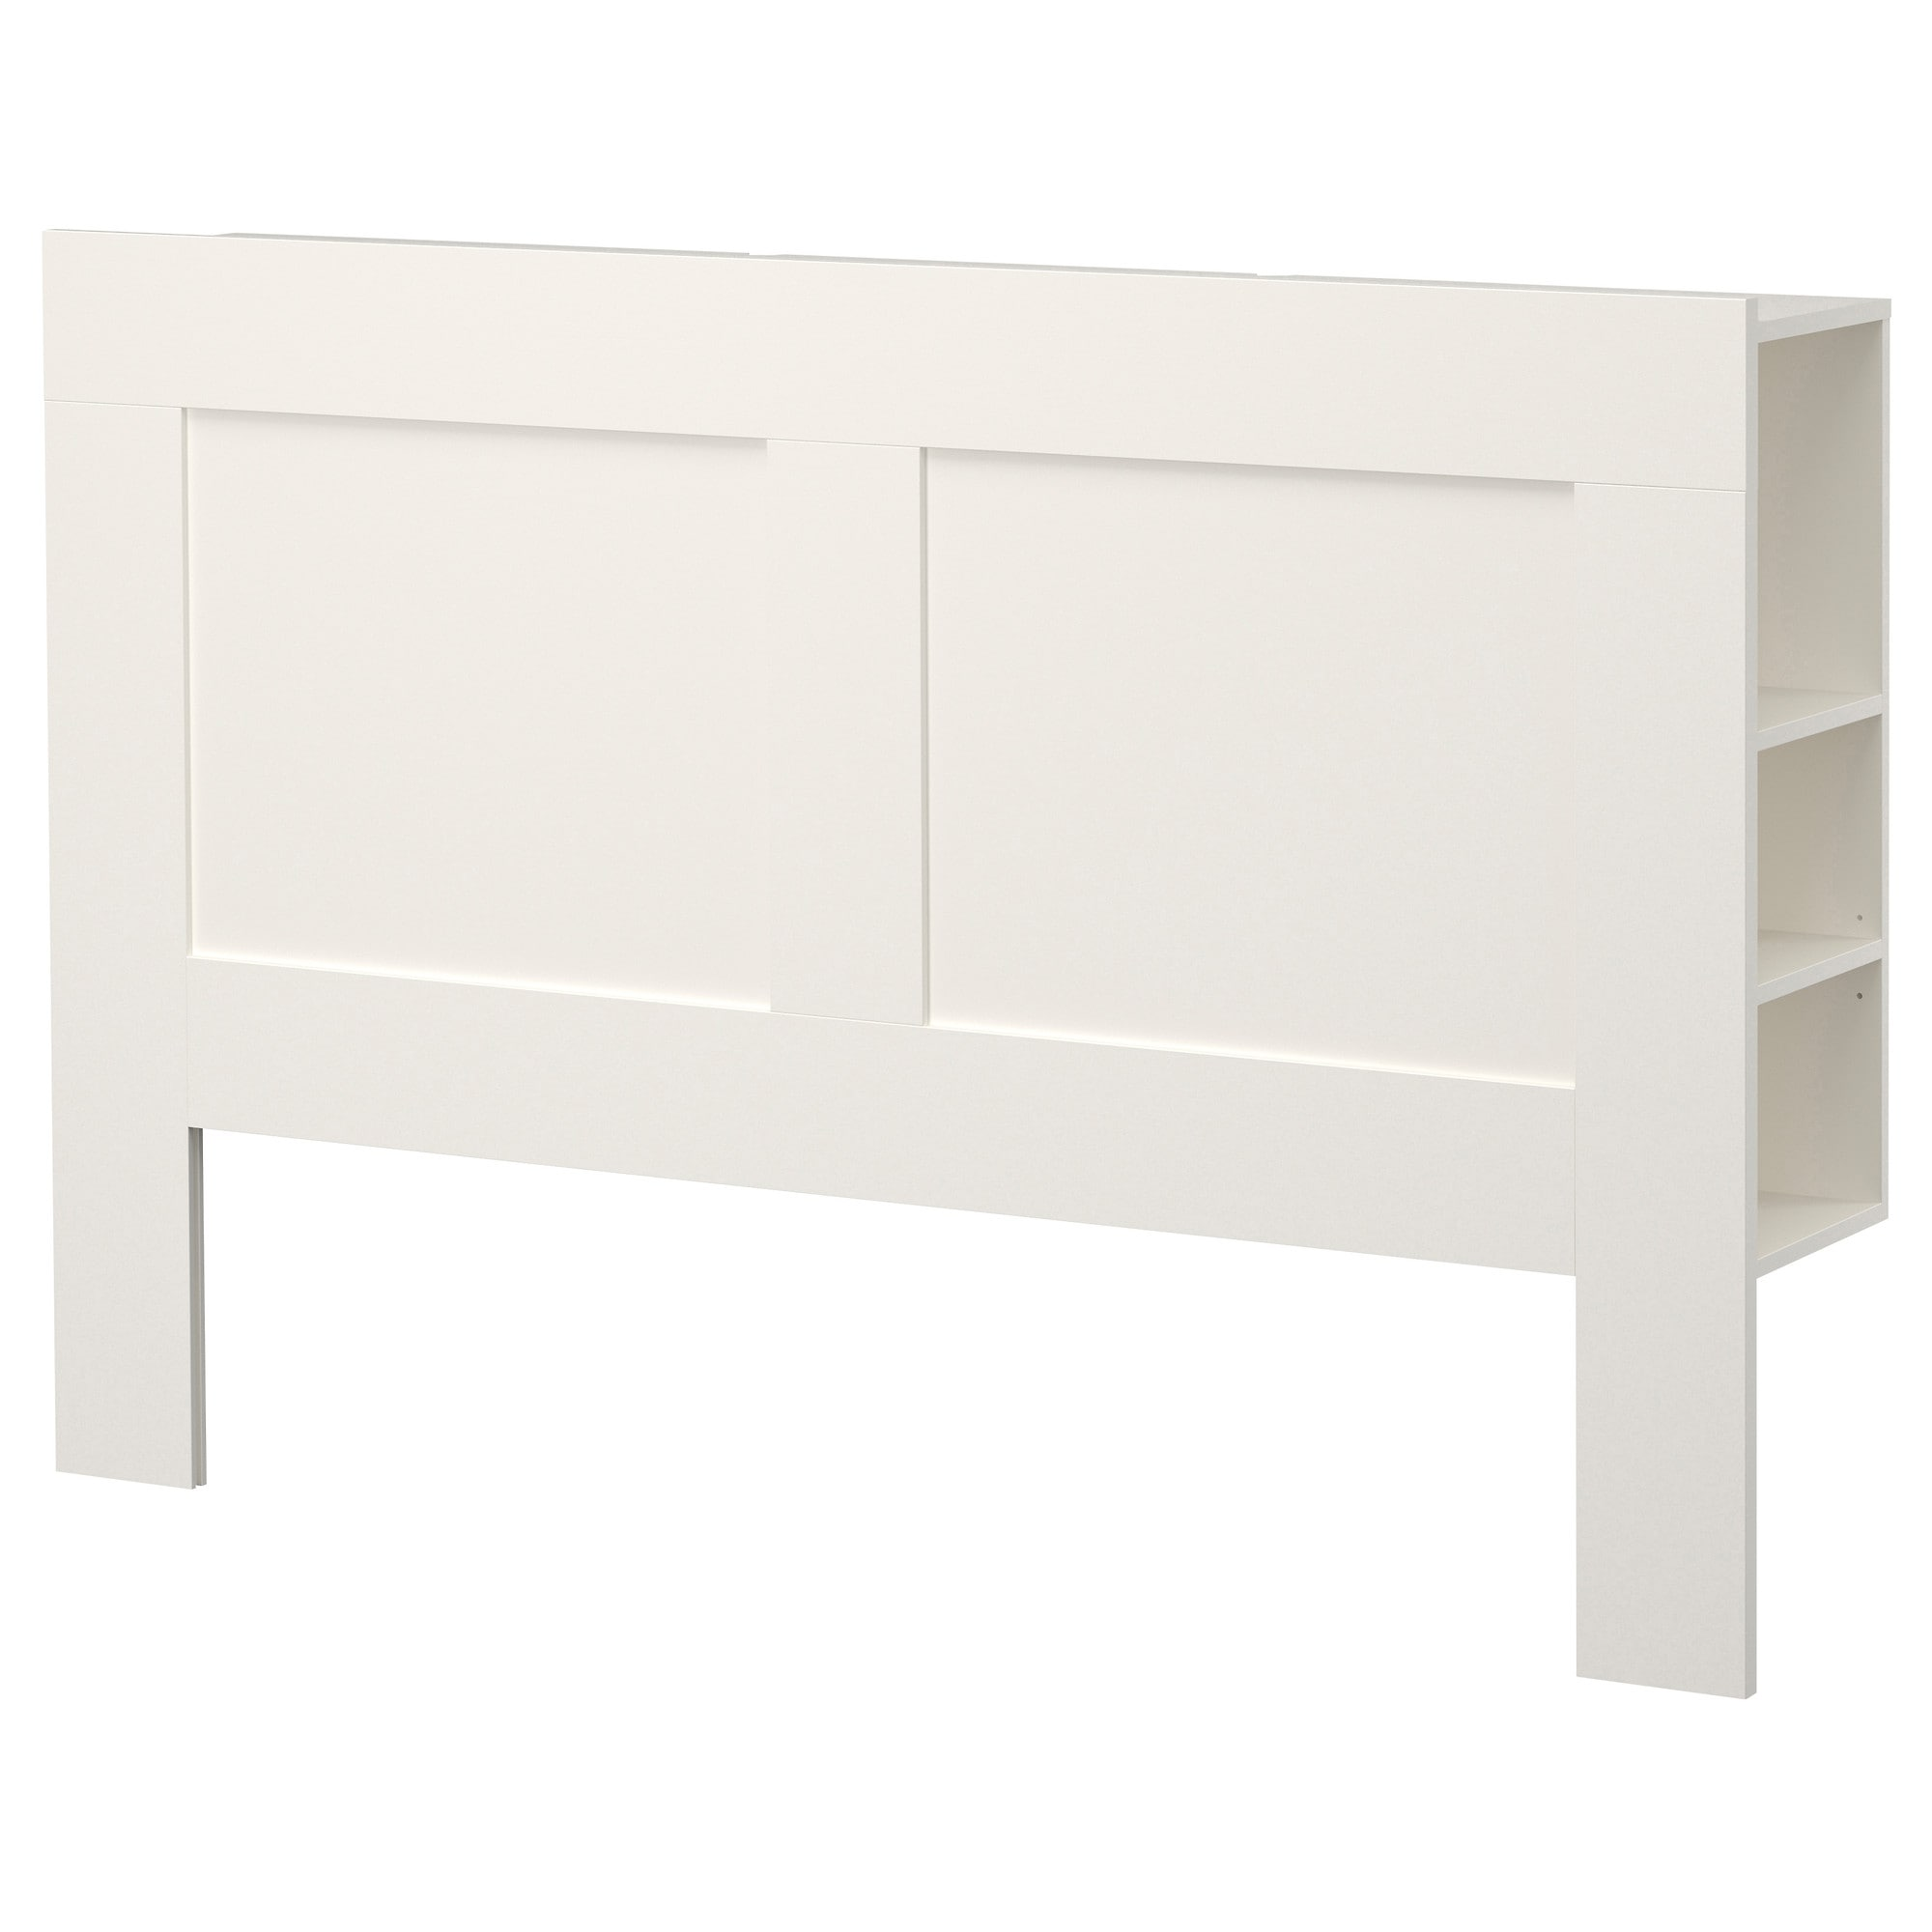 Ikea headboard storage interior decorating accessories - Tete de lit ikea malm ...